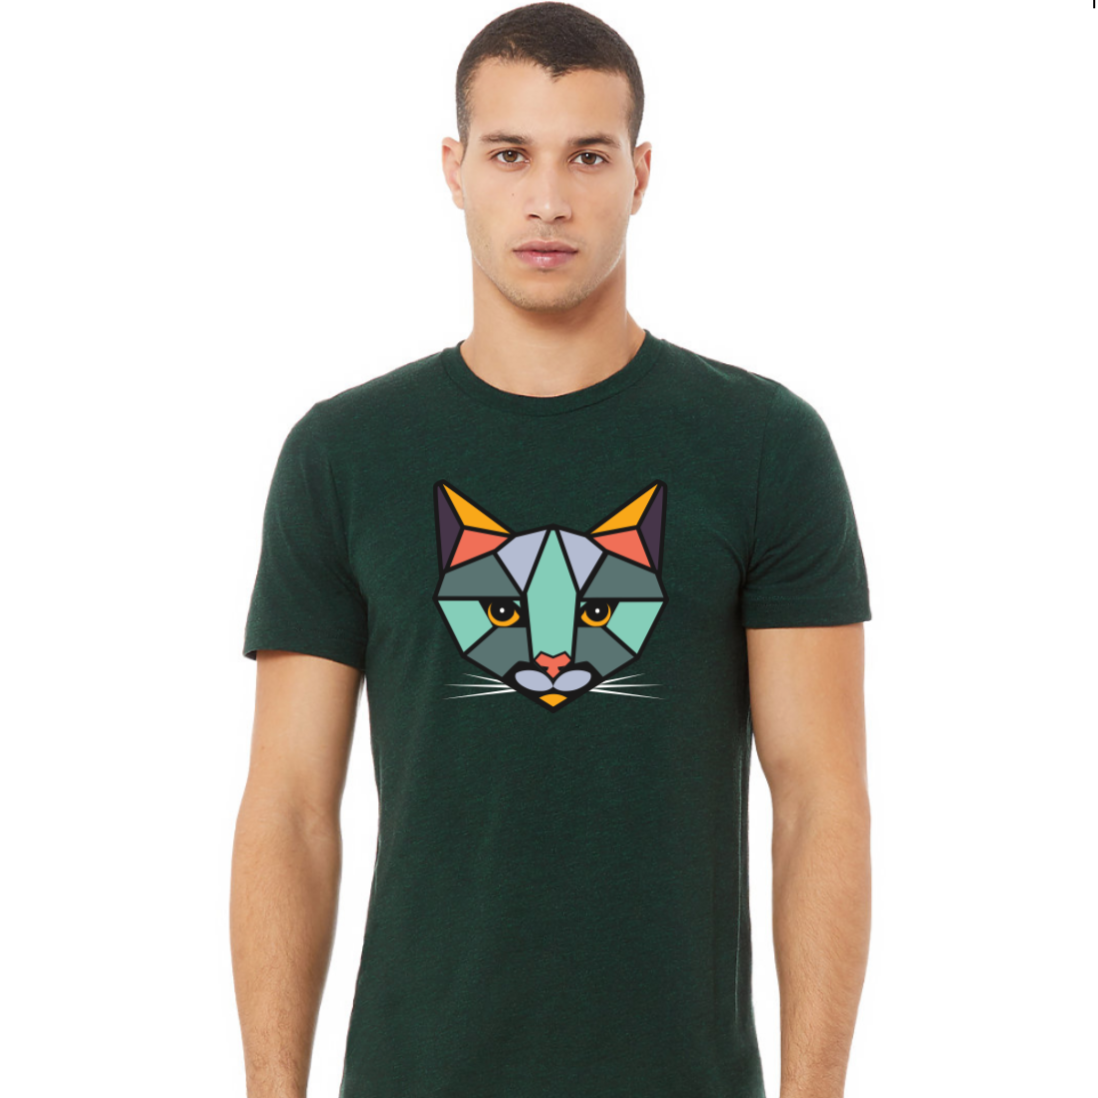 """ROAR T-Shirt"" - Emerald Green Heather + Full Color Logo (Unisex)"